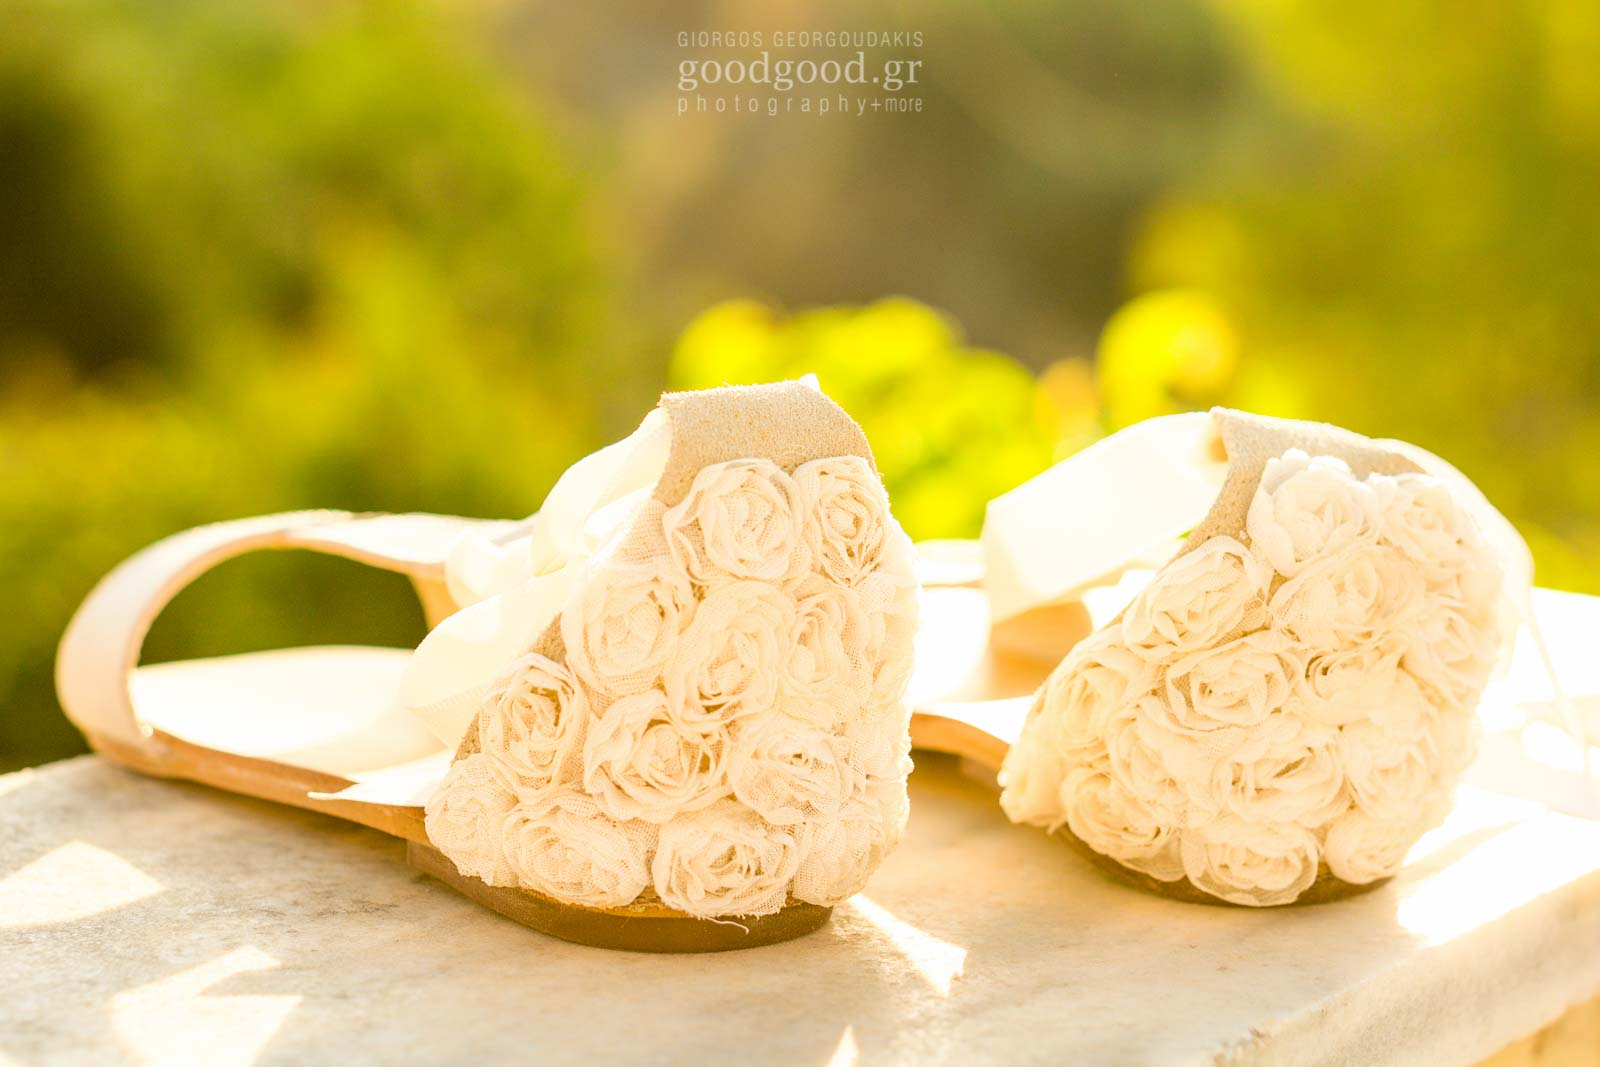 Girls christening shoes decorated with white roses